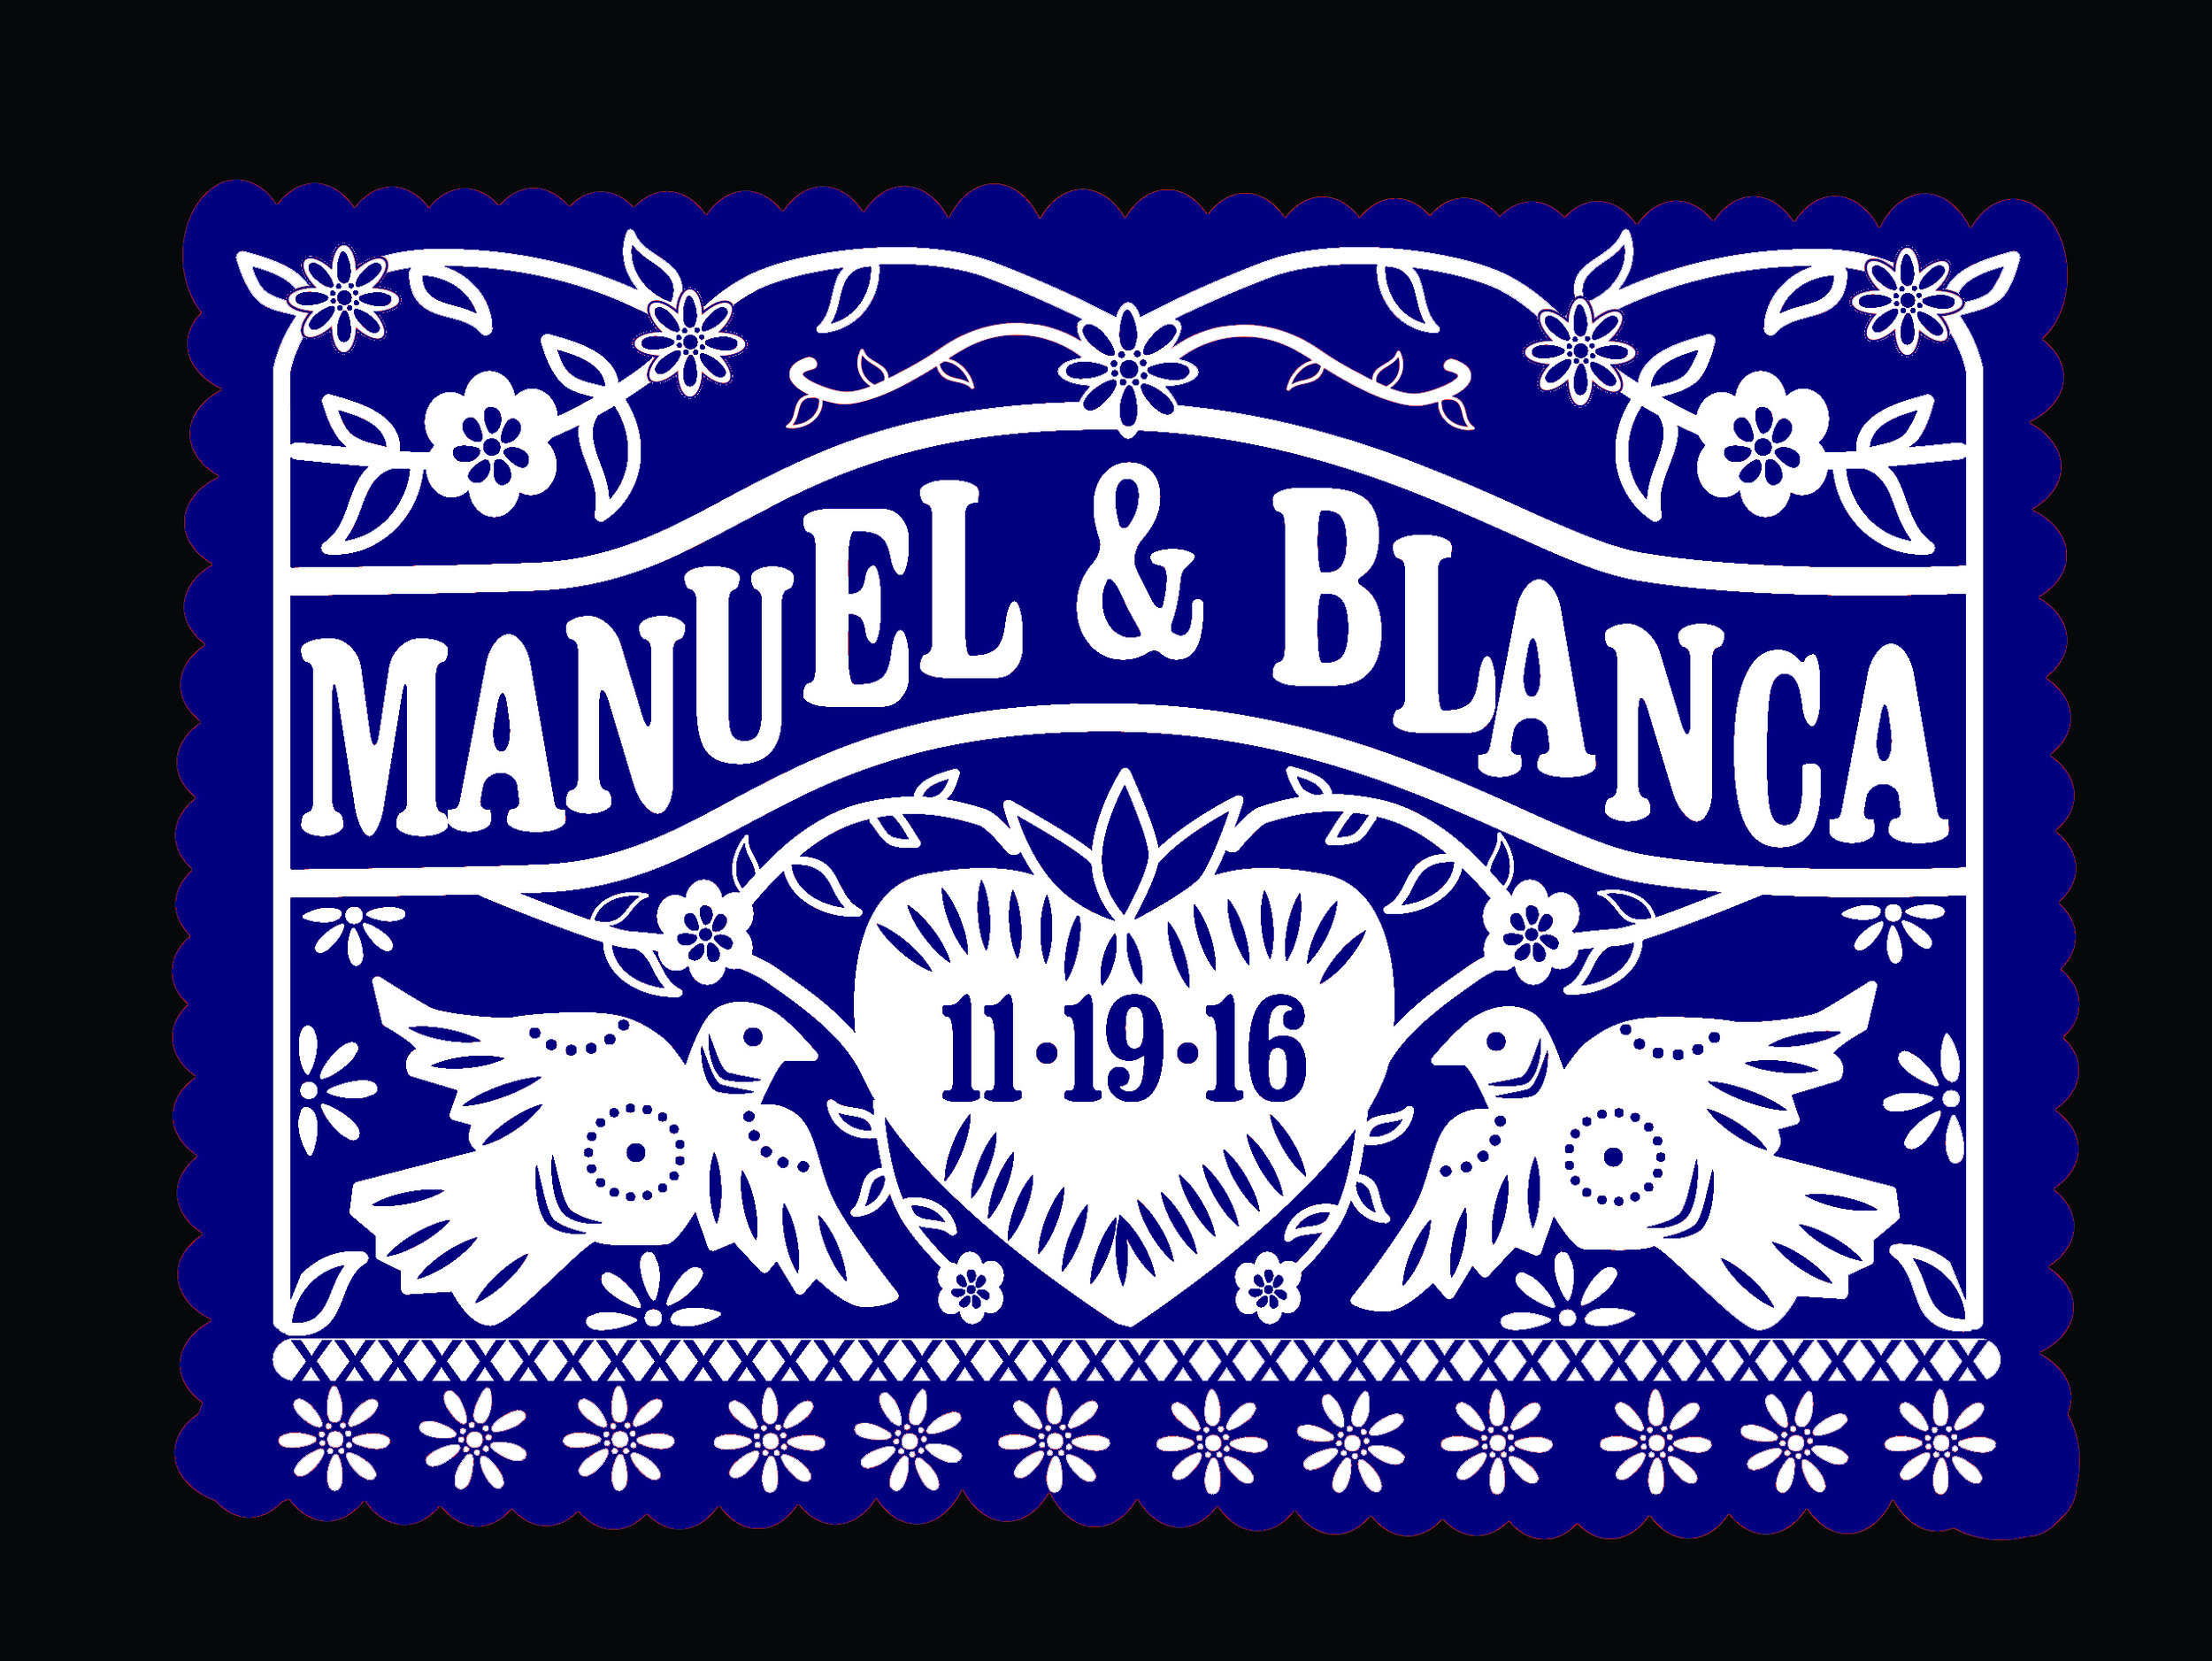 MANUEL AND BLANCA NAVY MONOGRAM.jpg